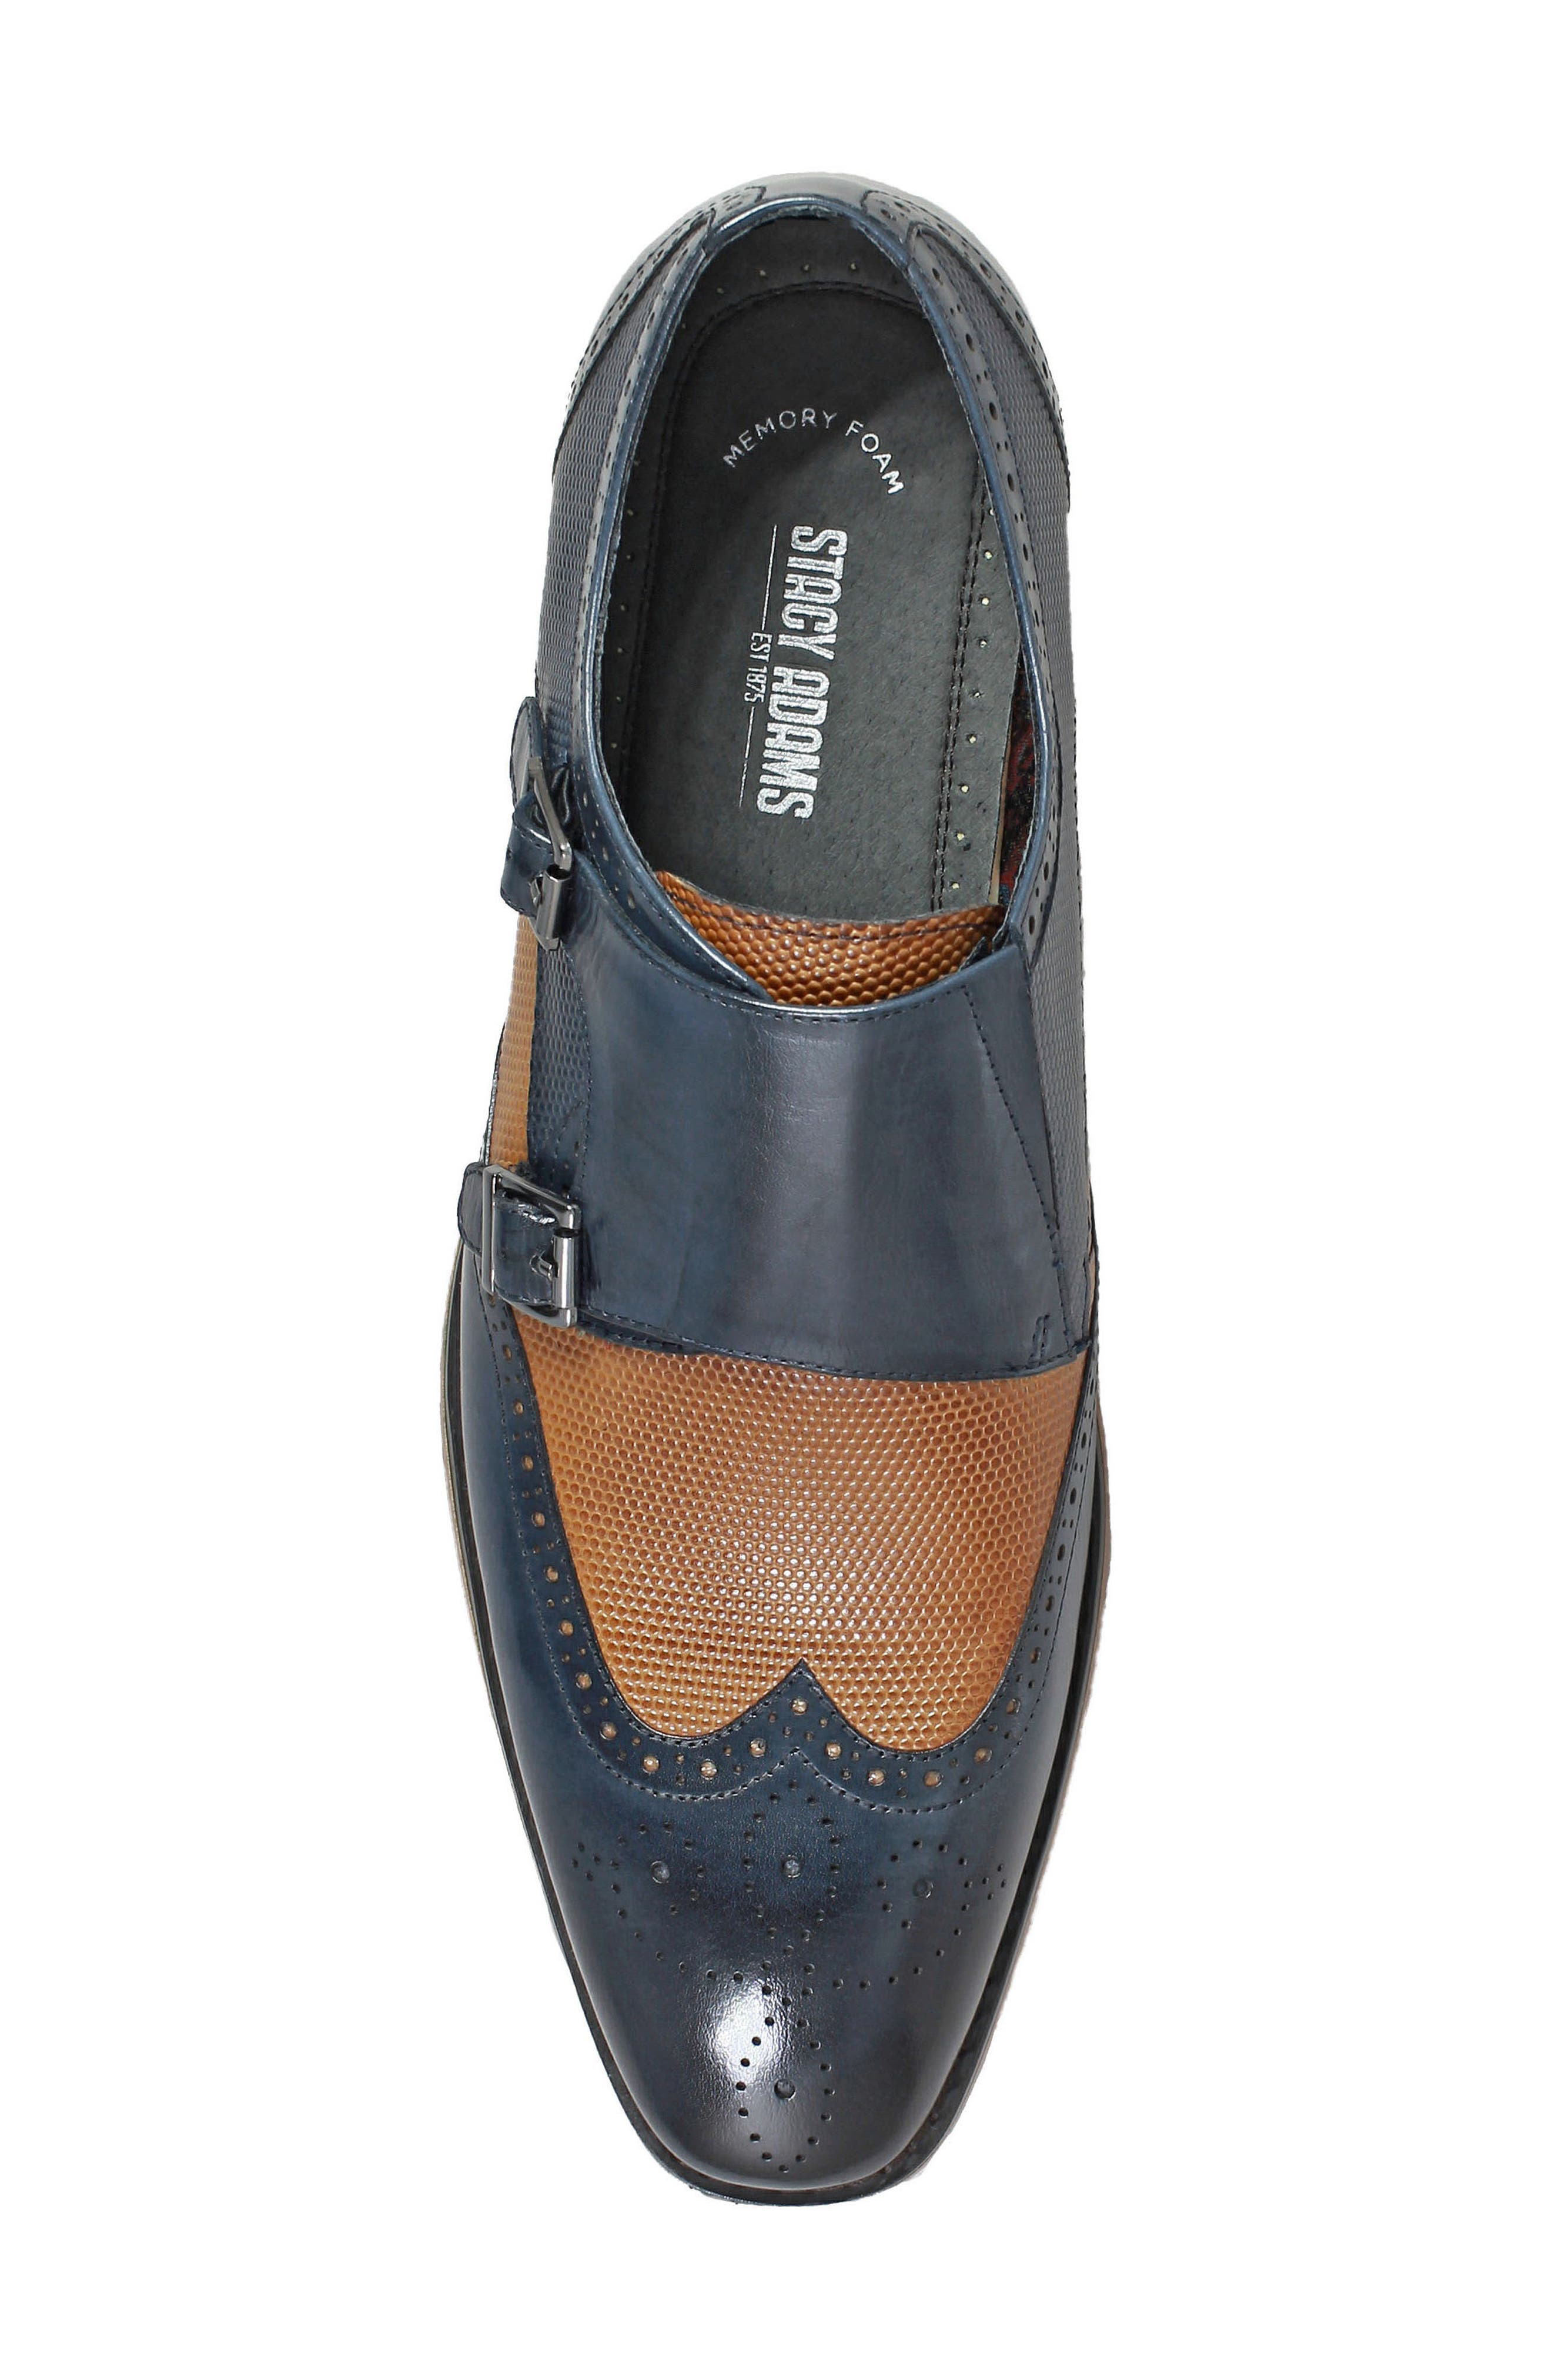 STACY ADAMS, Lavine Wingtip Monk Shoe, Alternate thumbnail 5, color, NAVY AND SADDLE TAN LEATHER